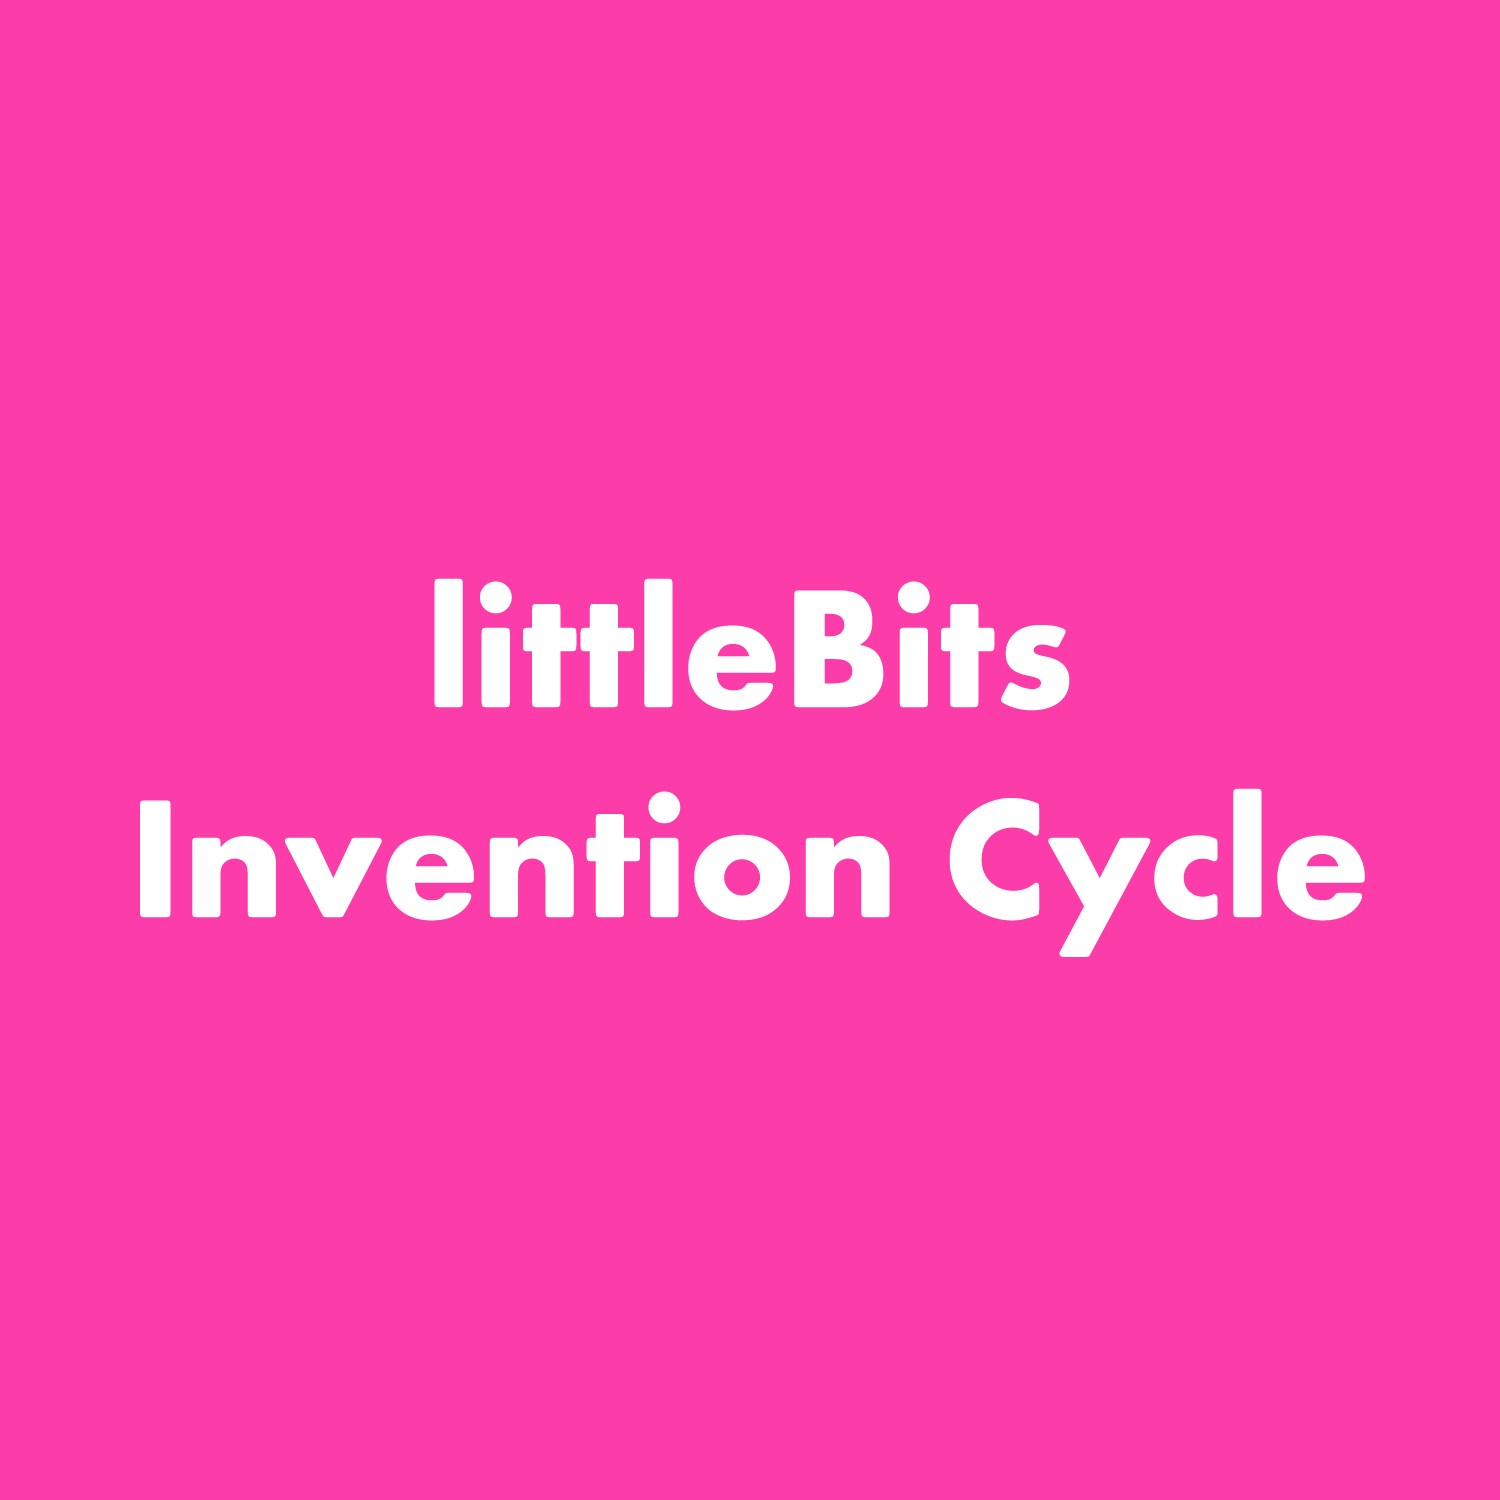 PDF: littleBits Invention Process